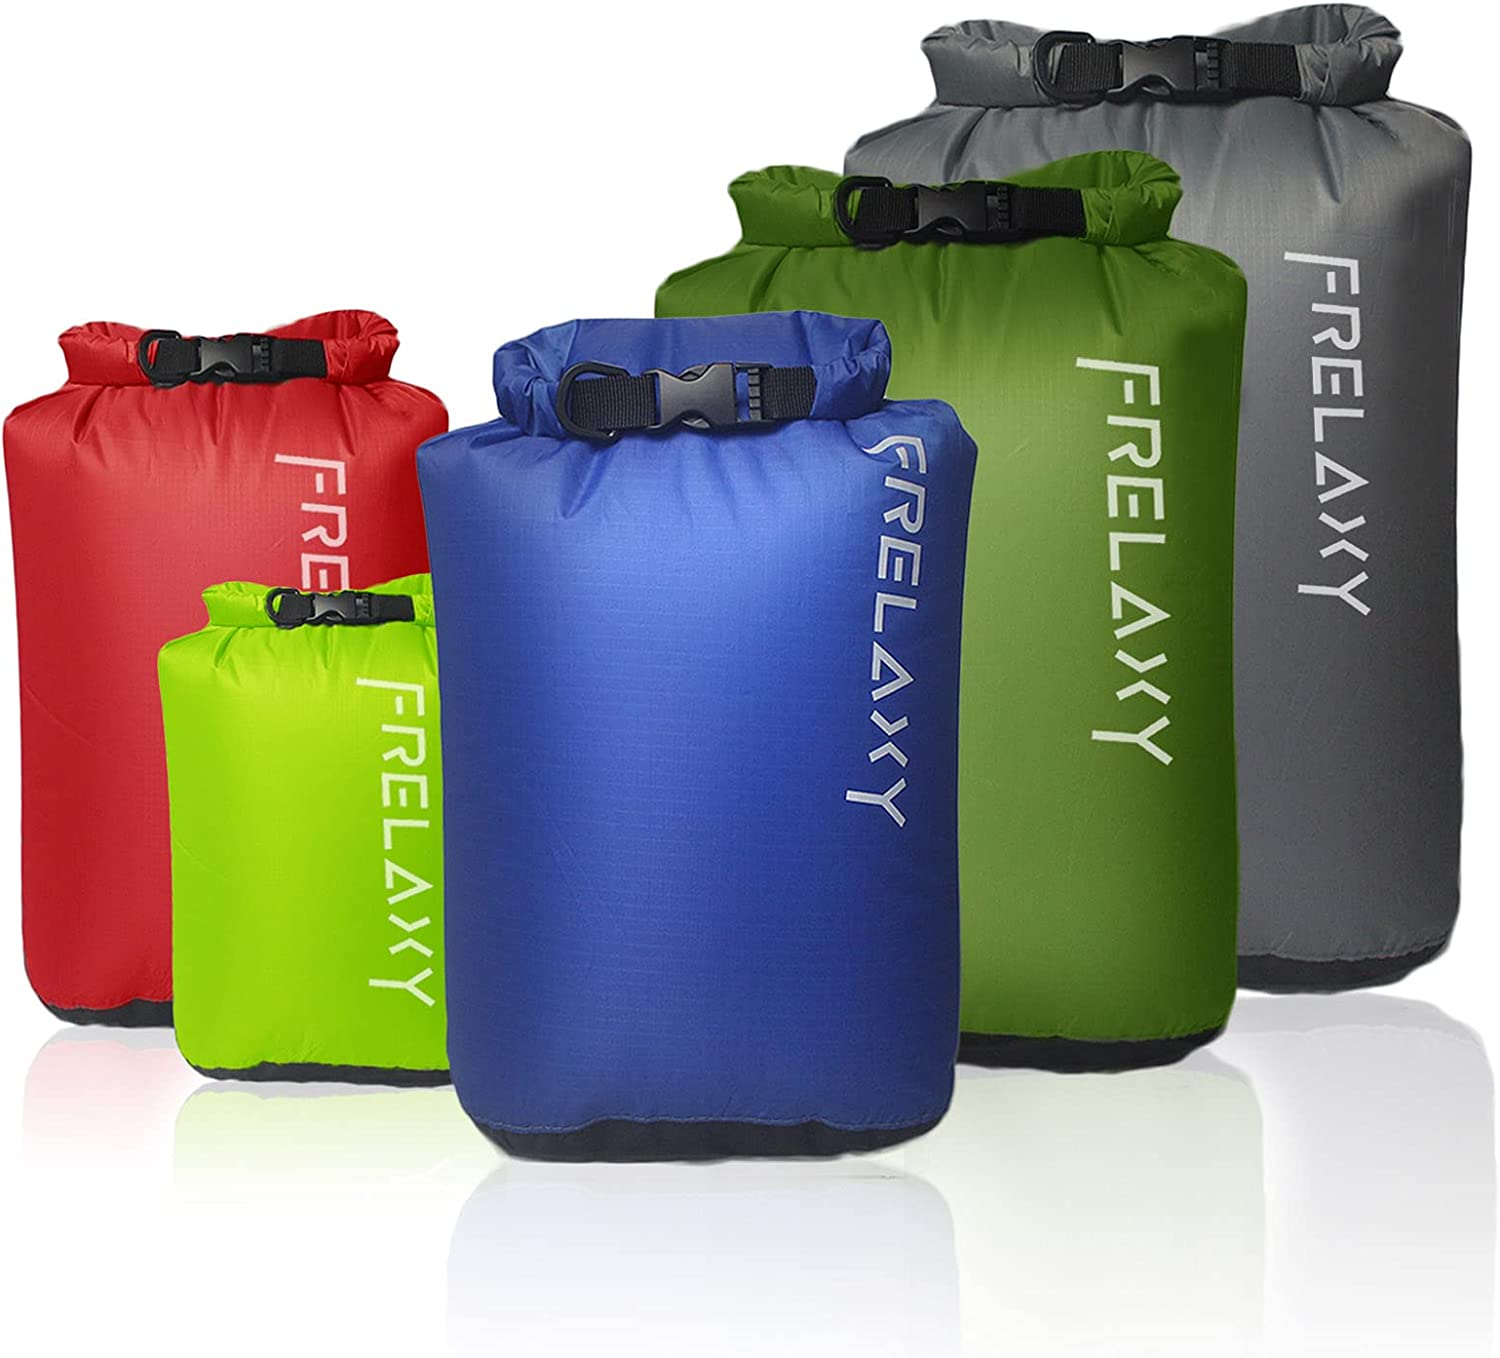 Award Frelaxy Waterproof Dry Sack 3-Pack Ultralight 5-Pack Challenge the lowest price Bags